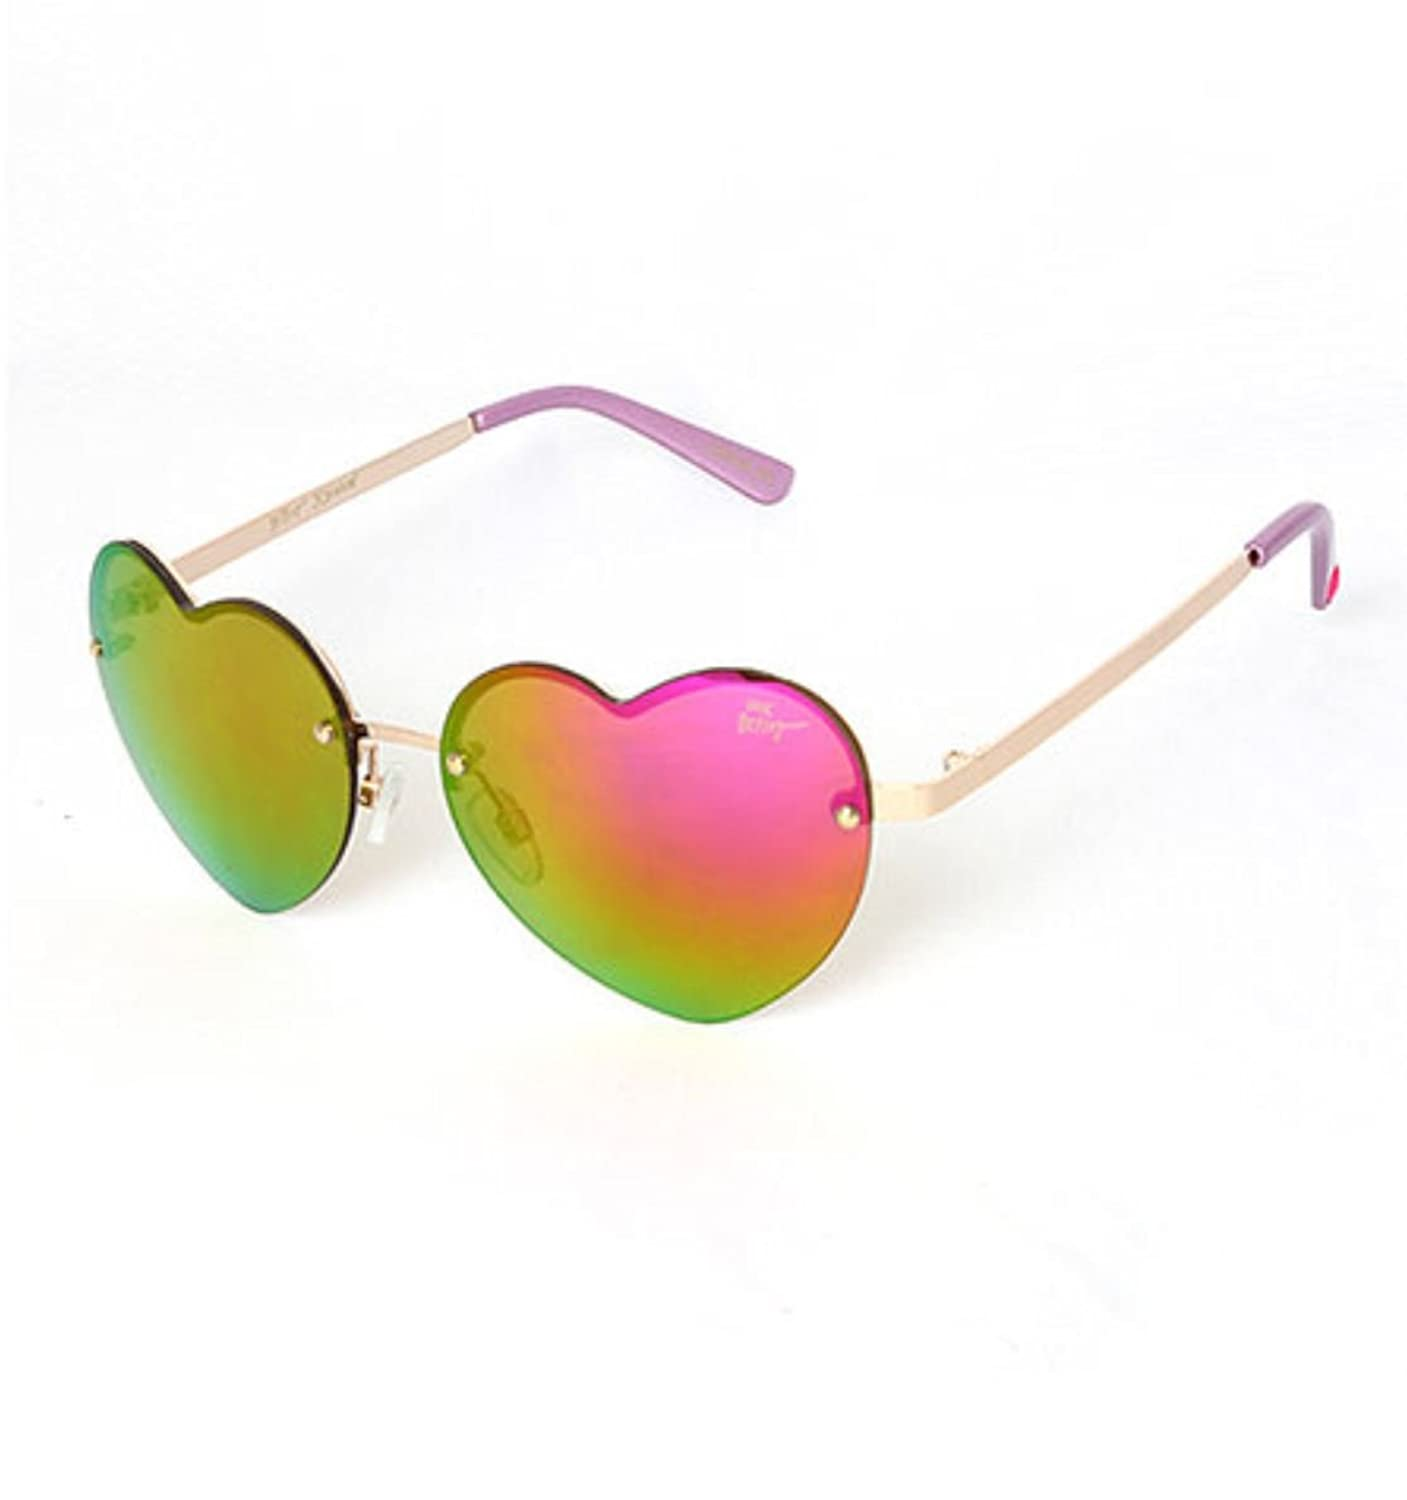 Betsey Johnson Pink and Gold Rimless Mirrored Heart Sunglasses